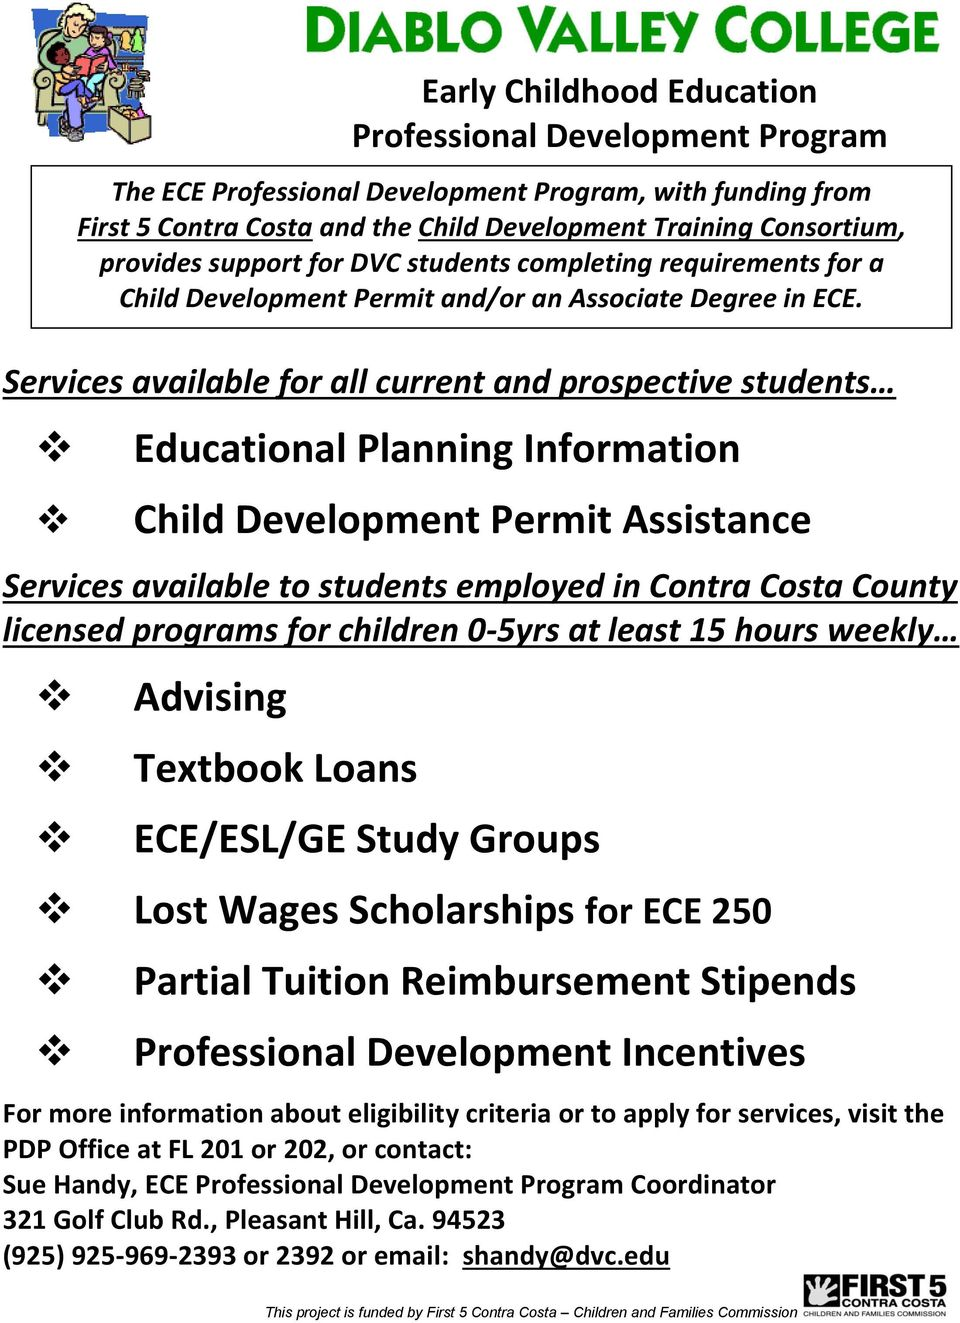 250 The ECE Professional Development Program, with funding from First 5 Contra Costa and the Child Development Training Consortium, provides support for DVC students completing requirements for a